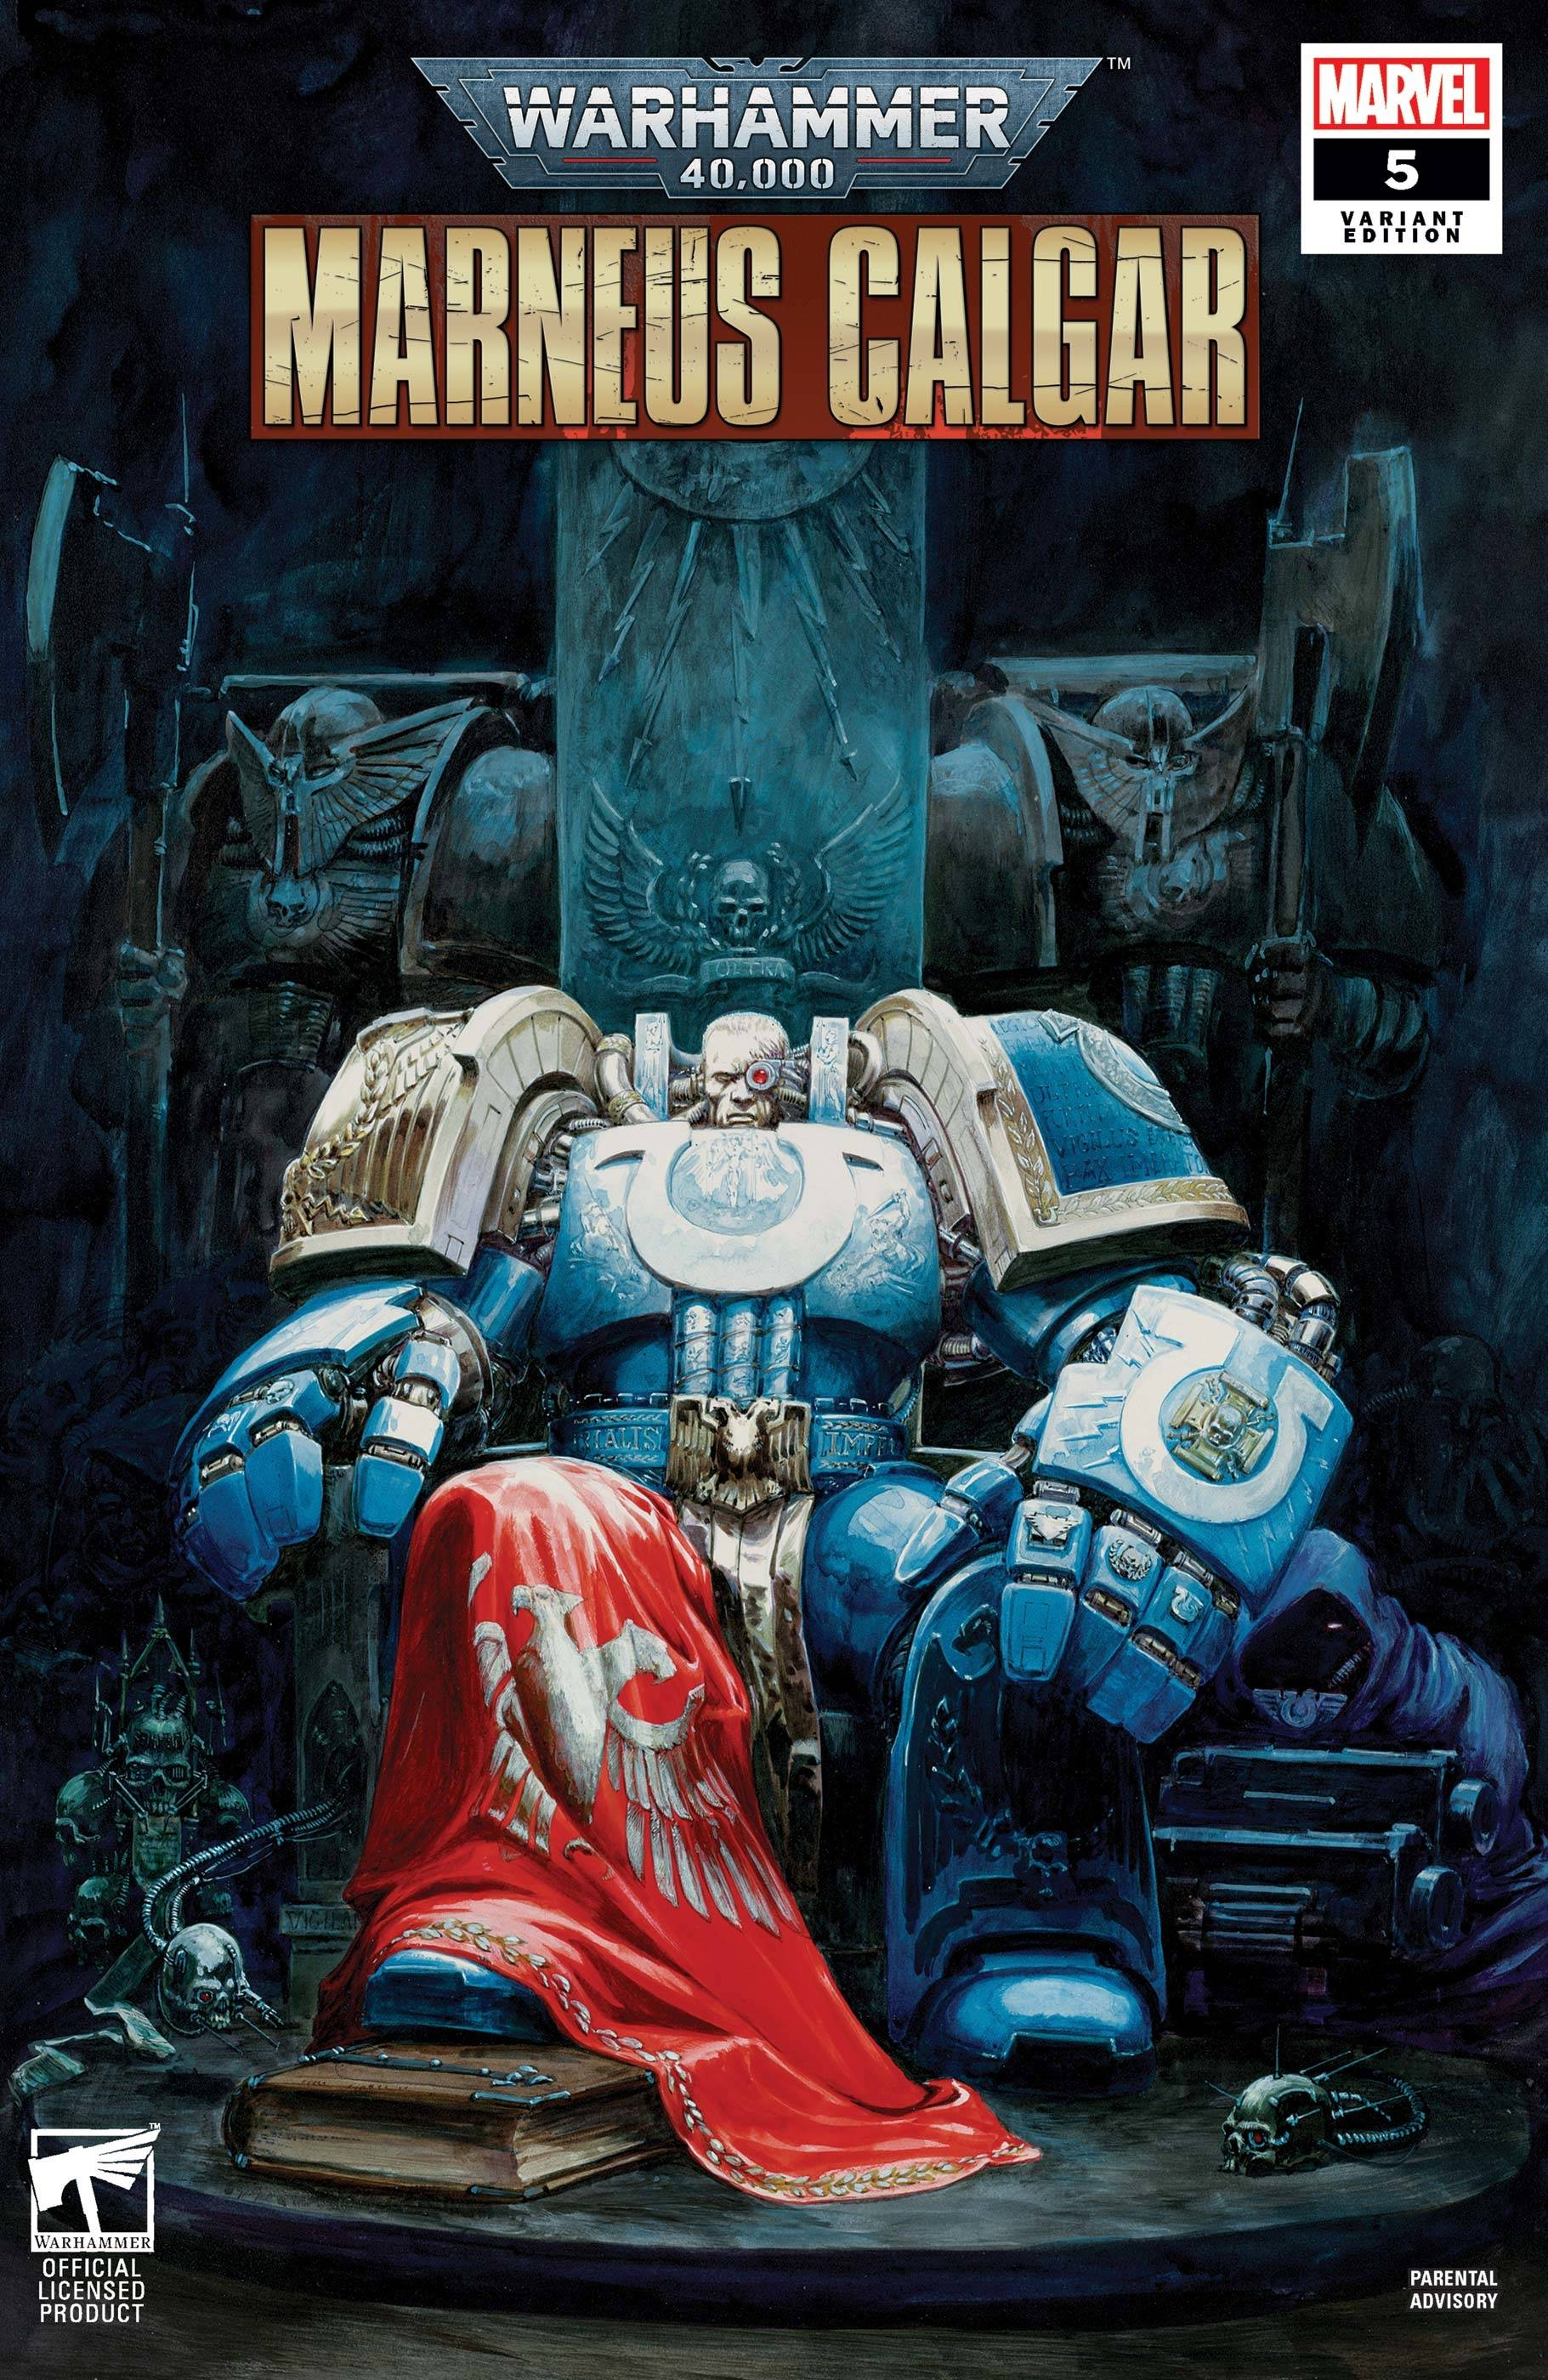 WARHAMMER 40K MARNEUS CALGAR #5 (OF 5) GAMES WORKSHOP VAR